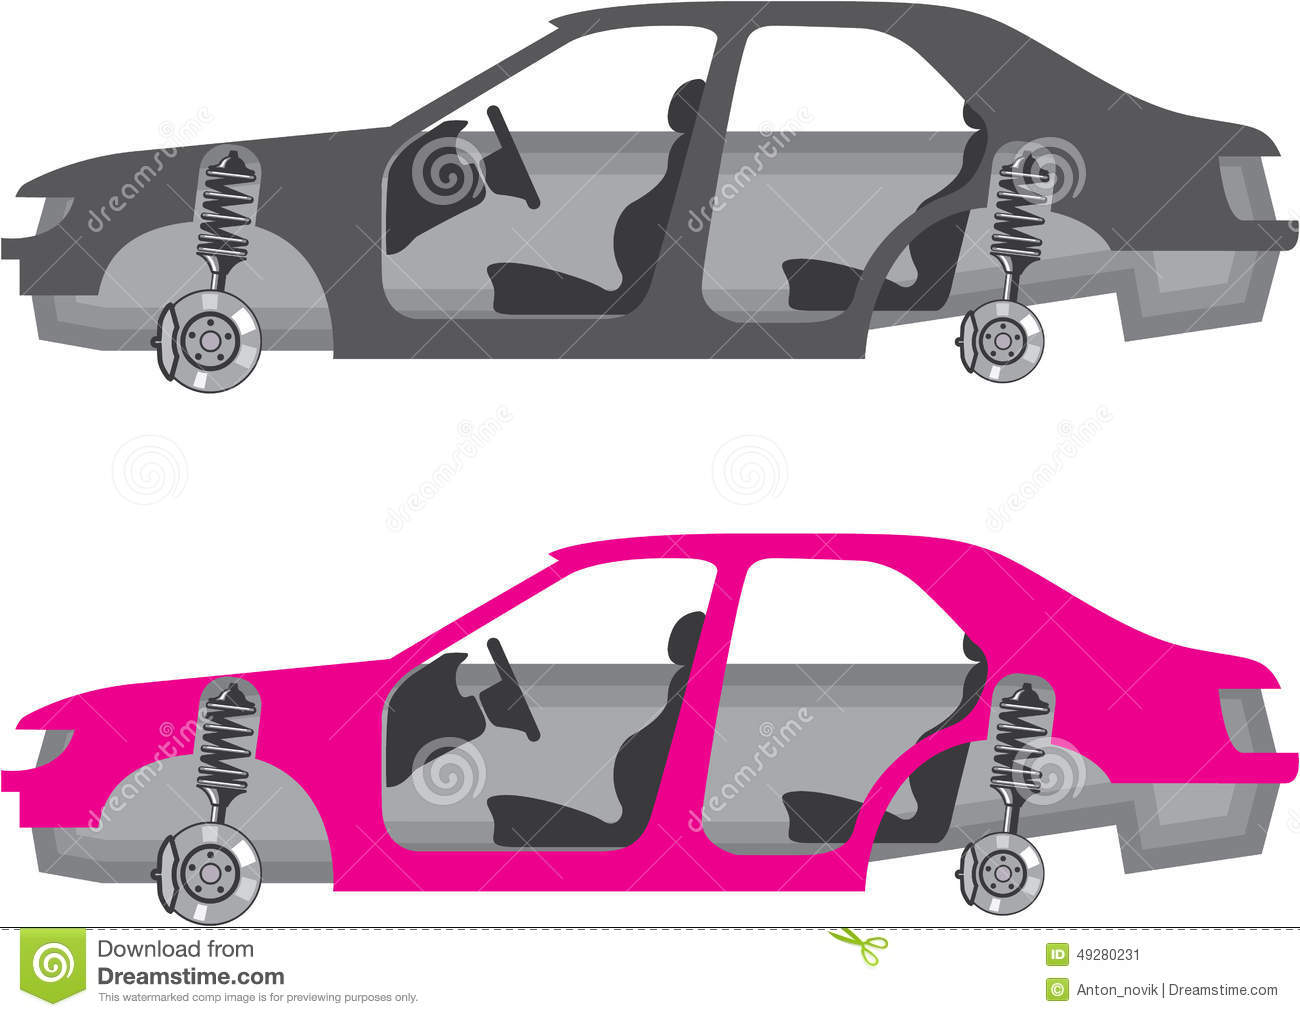 vehicle diagram clip art getting things done workflow car with wheels off doors auto body stock vector